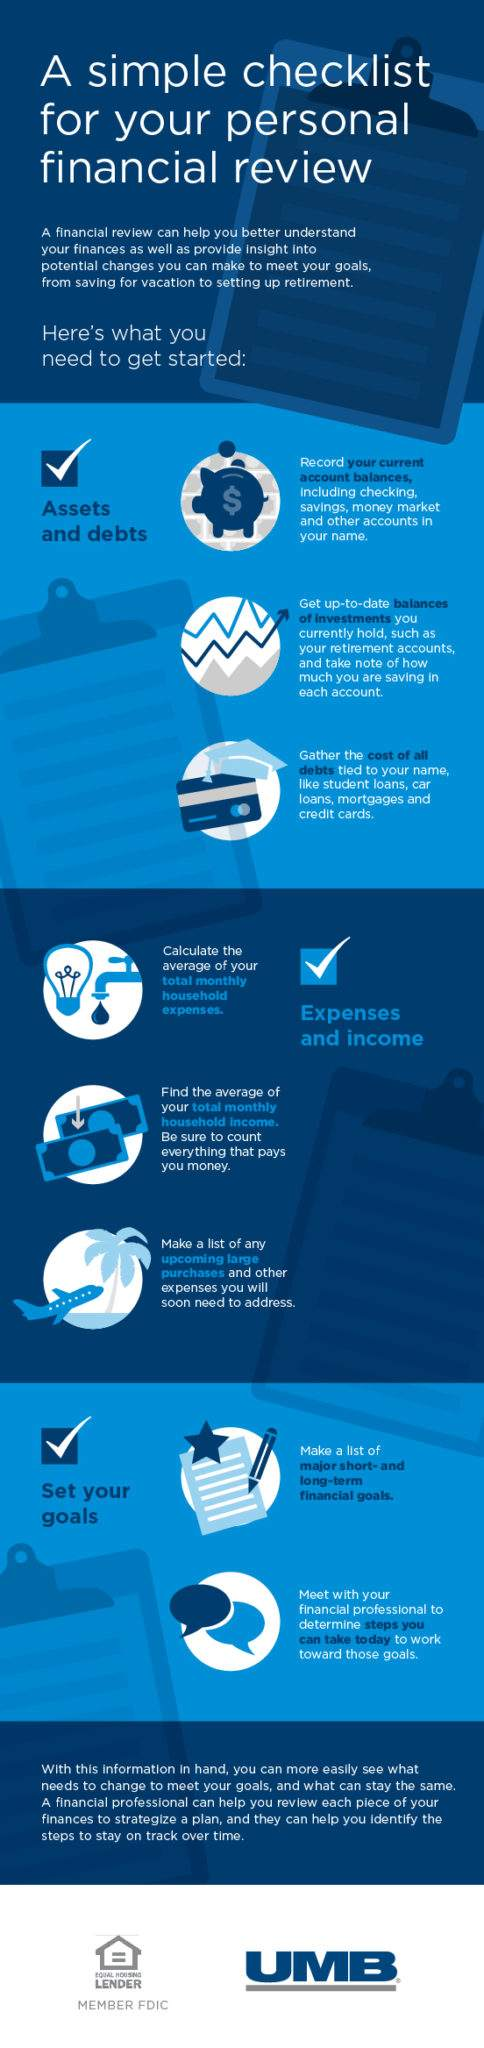 Financial review checklist infographic final 1